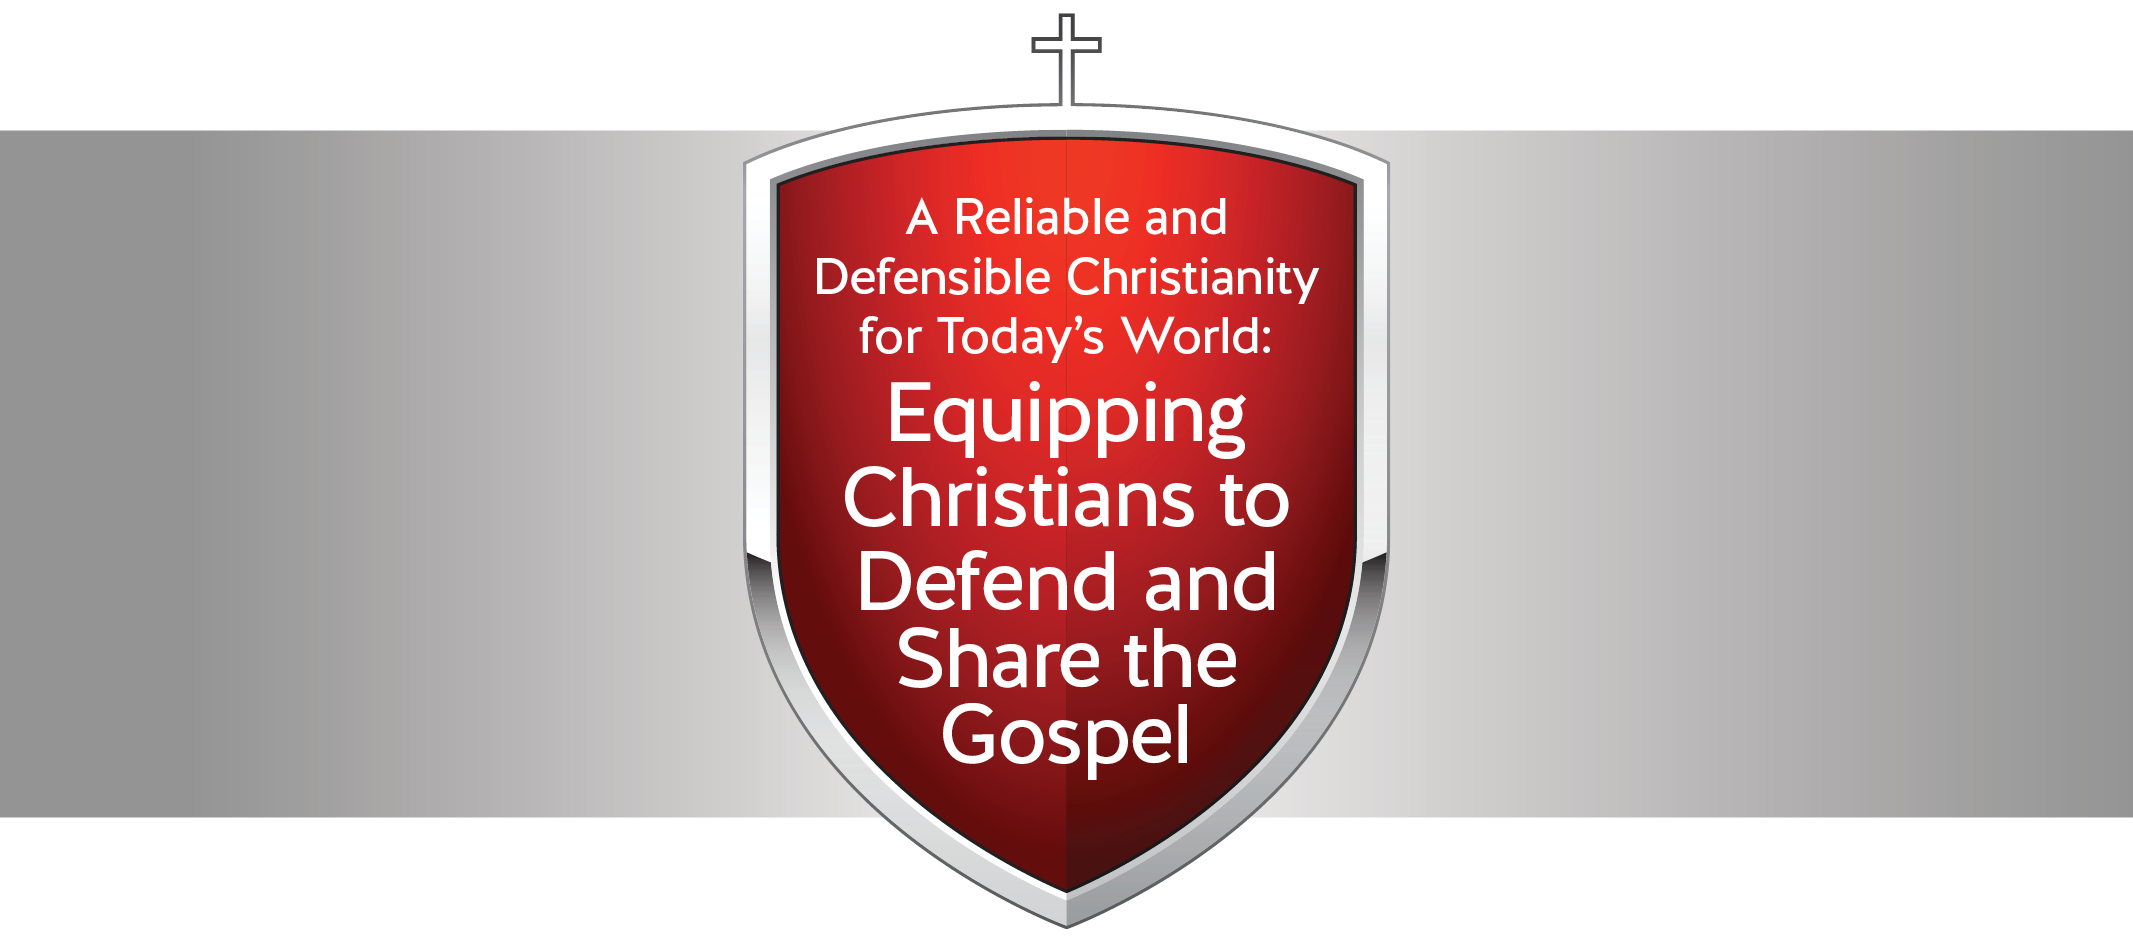 A Reliable and Defensible Christianity banner image